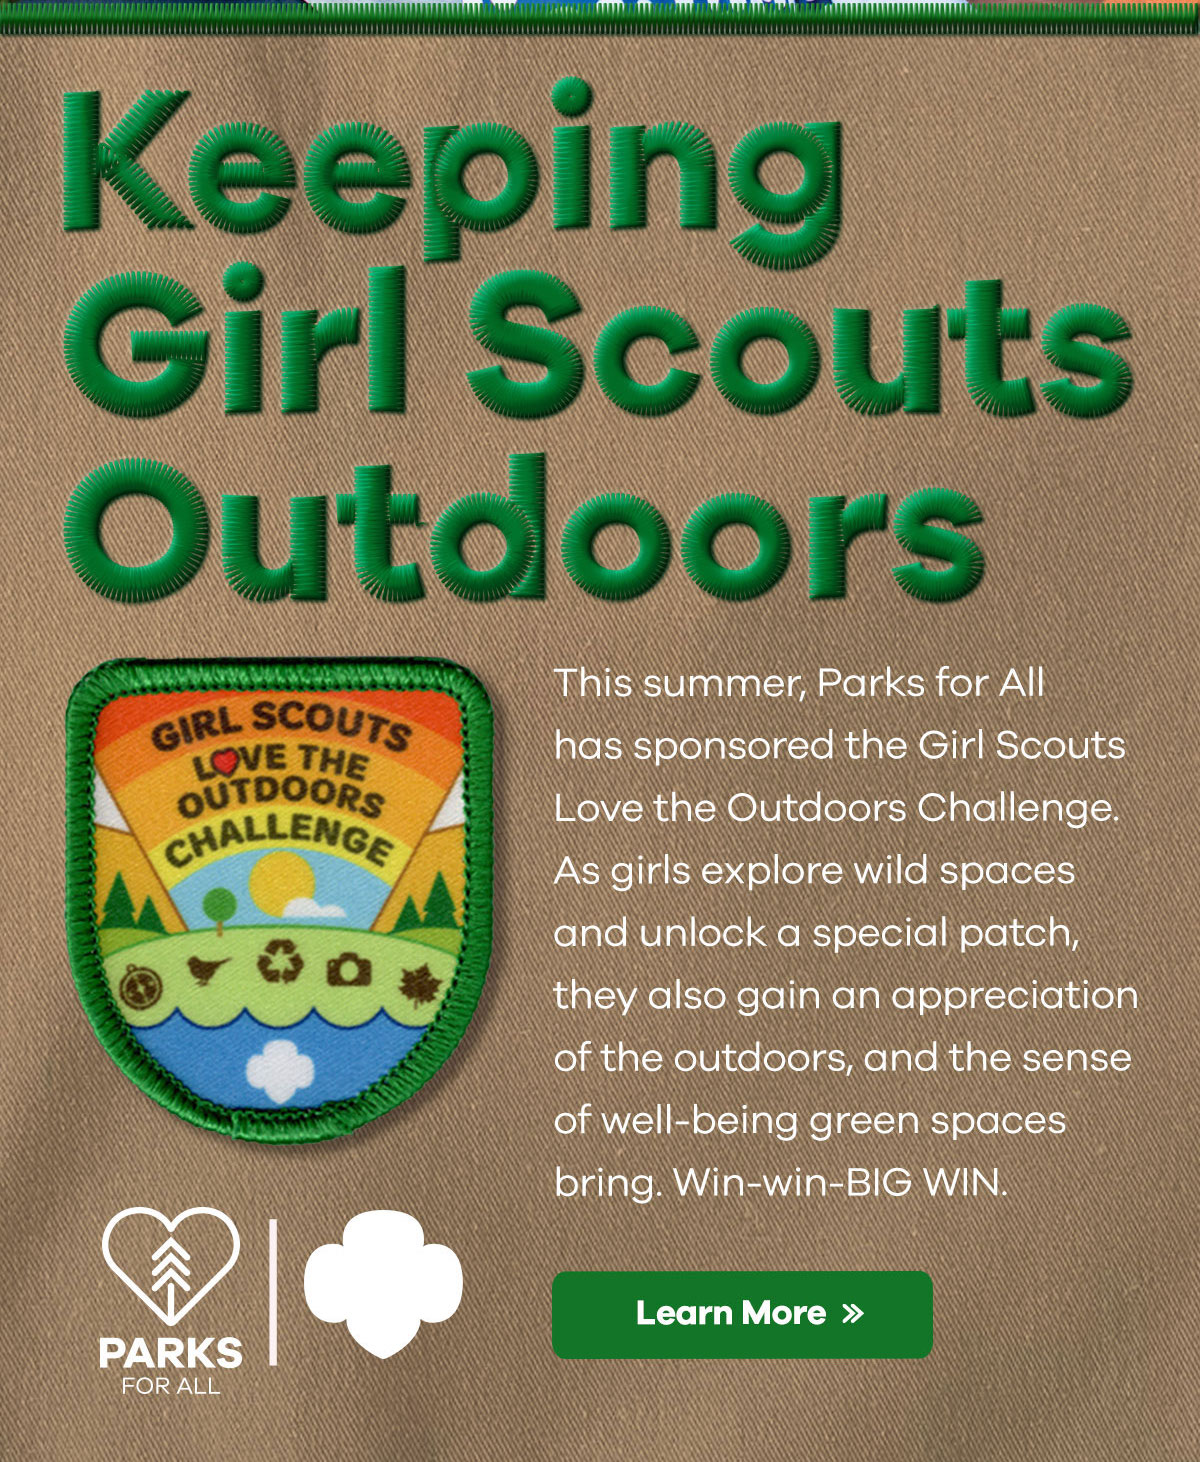 Keeping Girl Scouts Outdoors   This summer, Parks for All has sponsored the Girl Scouts Love the Outdoors Challenge. As girls explore wild spaces and unlock a special patch, they also gain an appreciation of the outdoors, and the sense of well-being green spaces bring. Win-win-BIG WIN.   Learn More >>